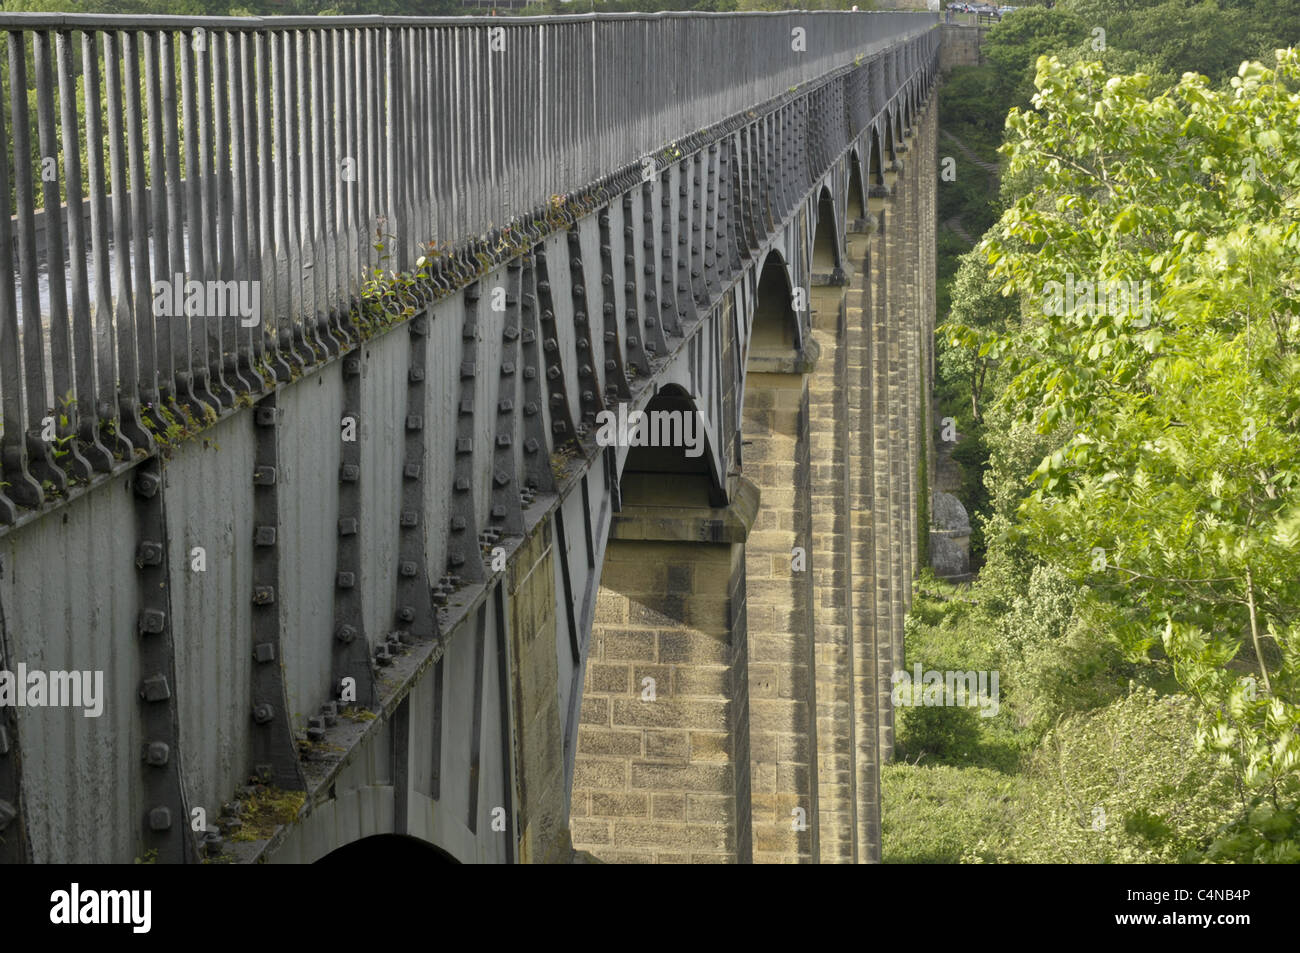 pontcysyllte aqueduct on the Llangollen canal, over the Rive Dee. - Stock Image